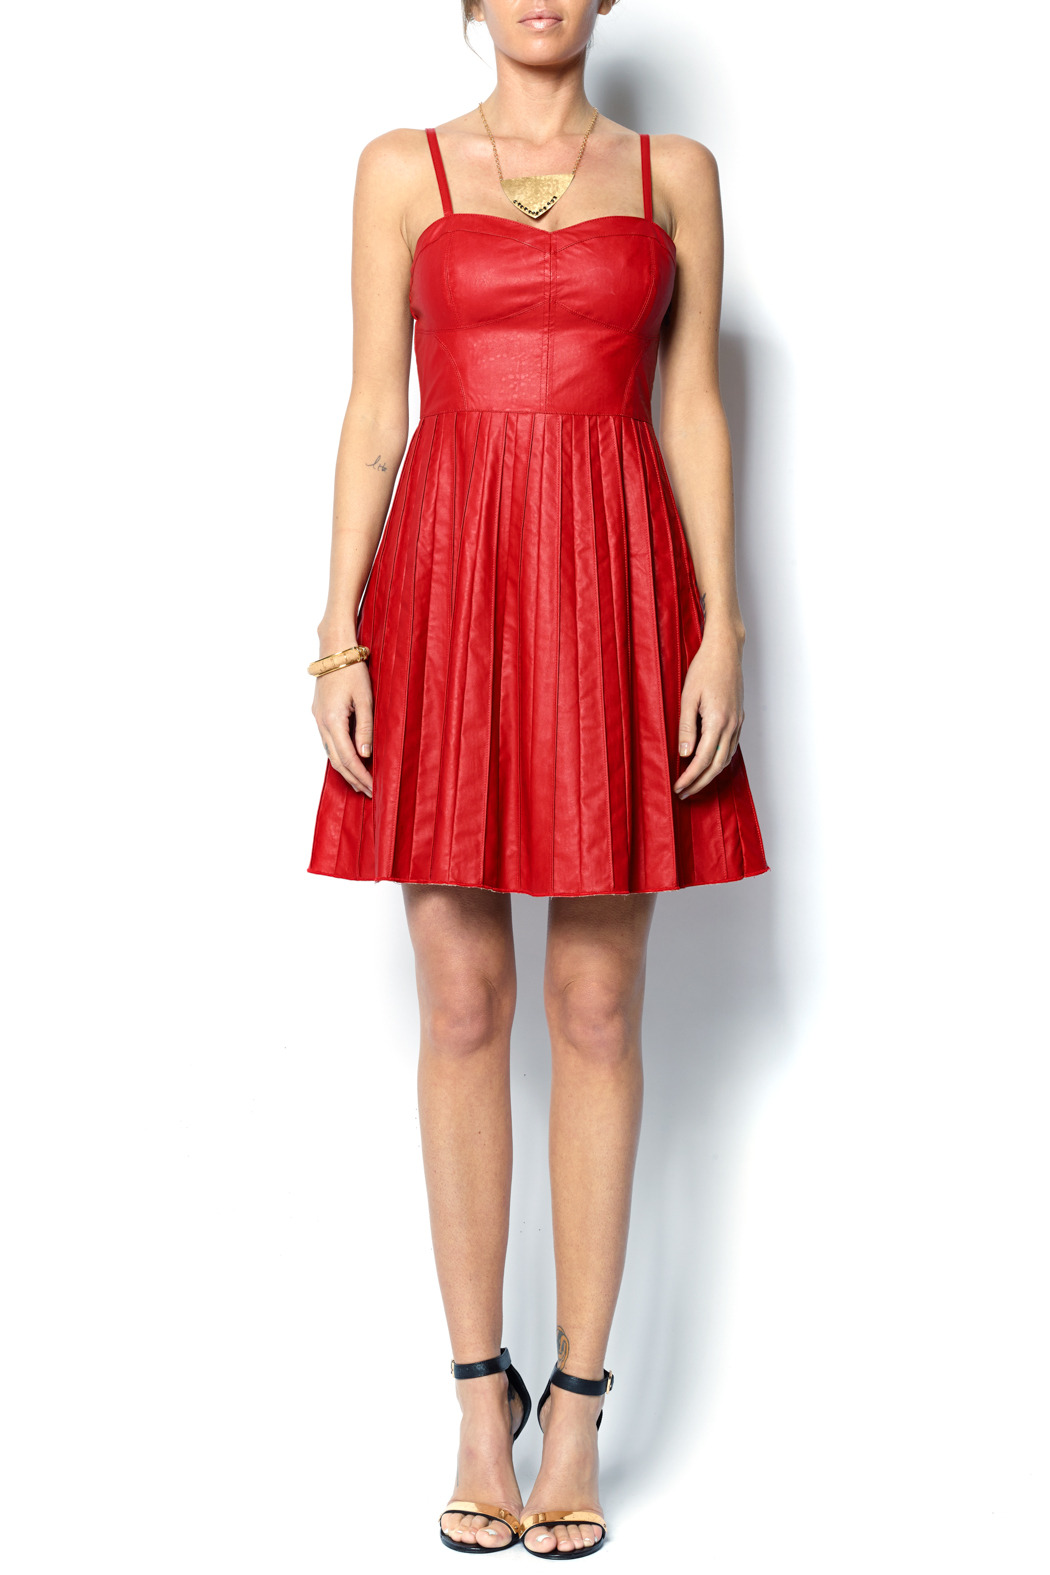 Ark Amp Co Faux Leather Red Dress From Charlotte By The